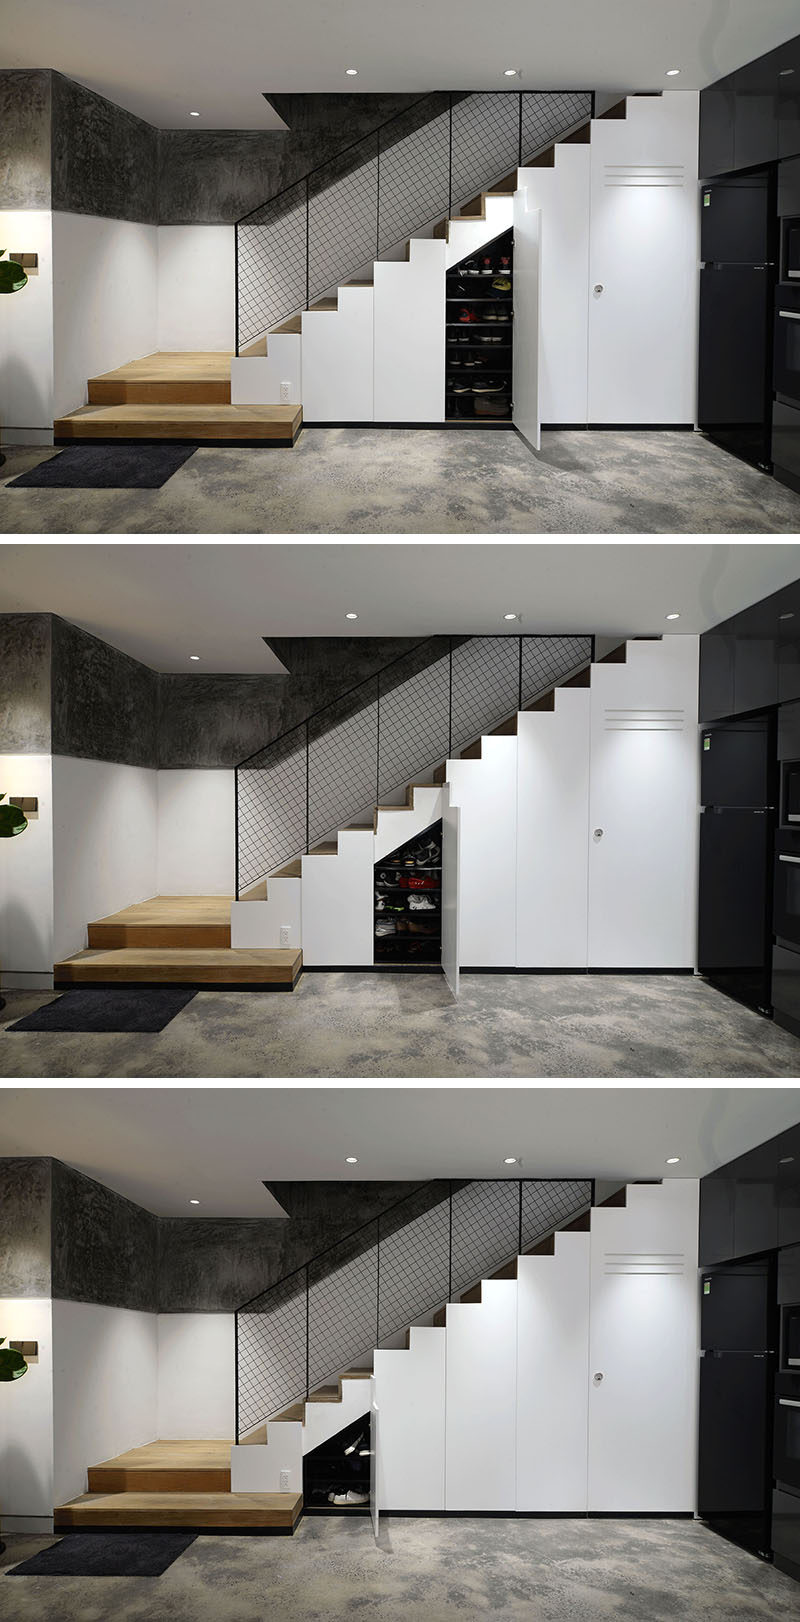 These modern stairs have hidden storage cabinets beneath them. #HiddenStorage #StairsWithStorage